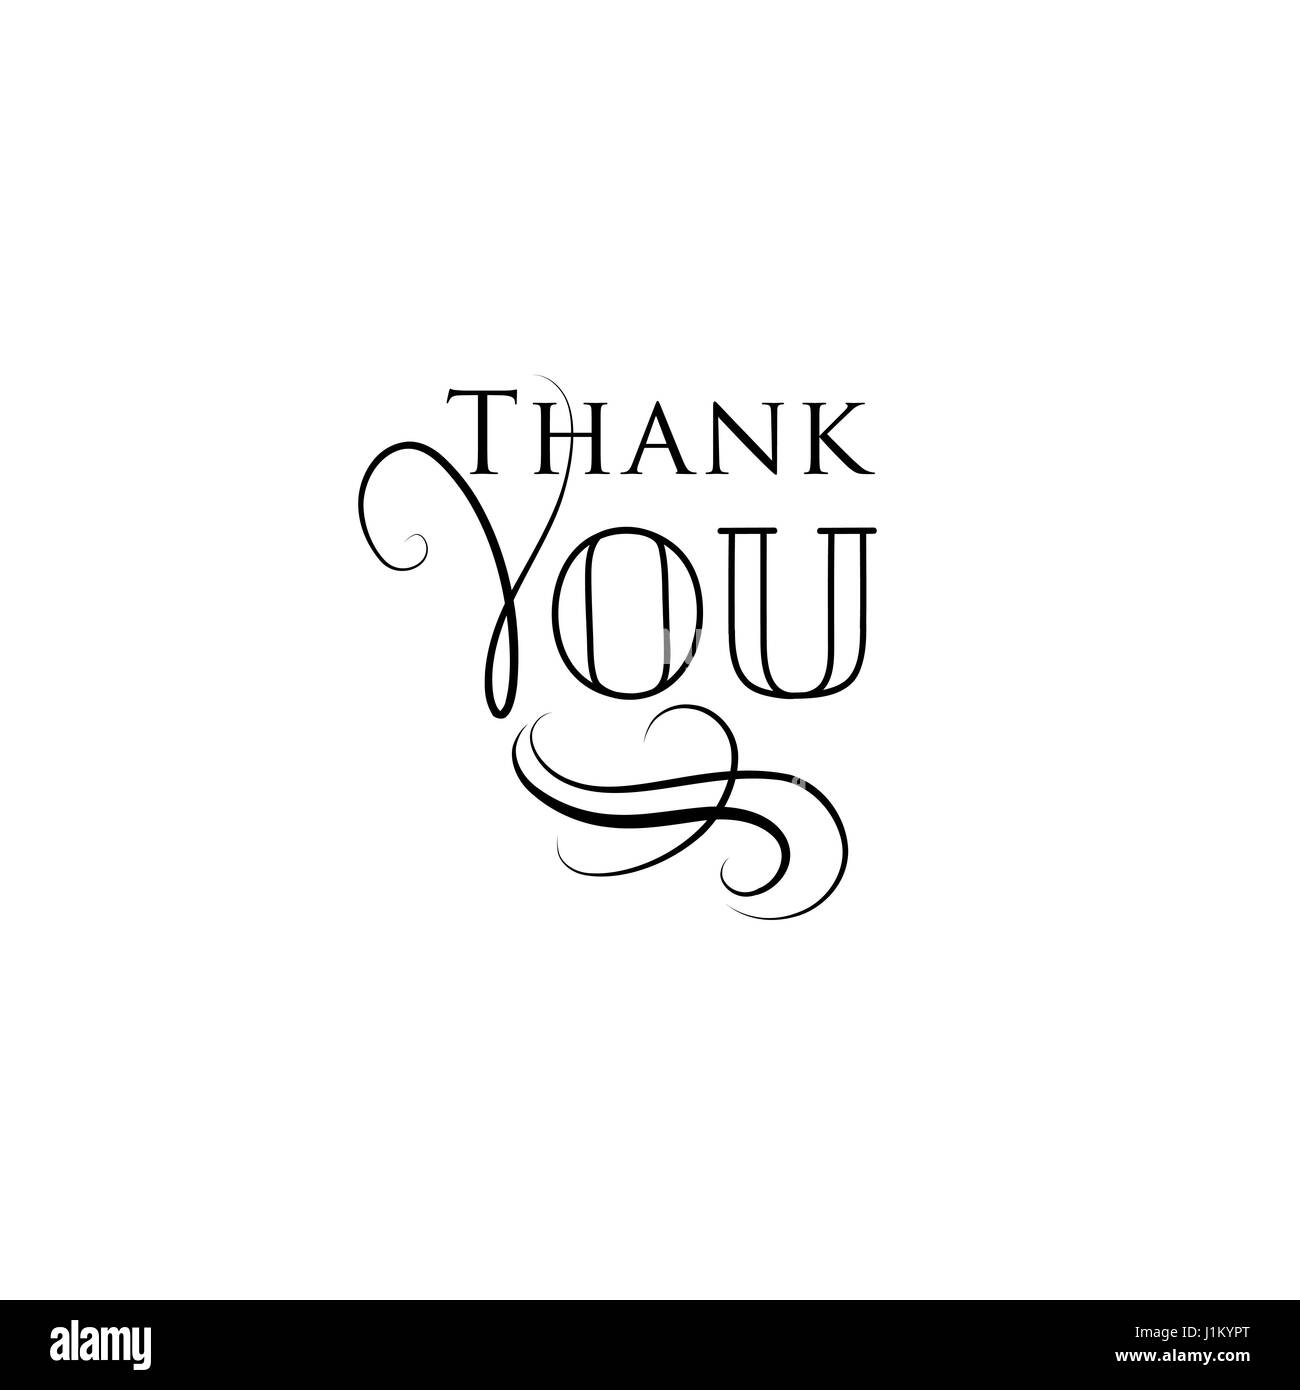 Thank You Greeting Card With Handwritten Lettering And Swirl Floral